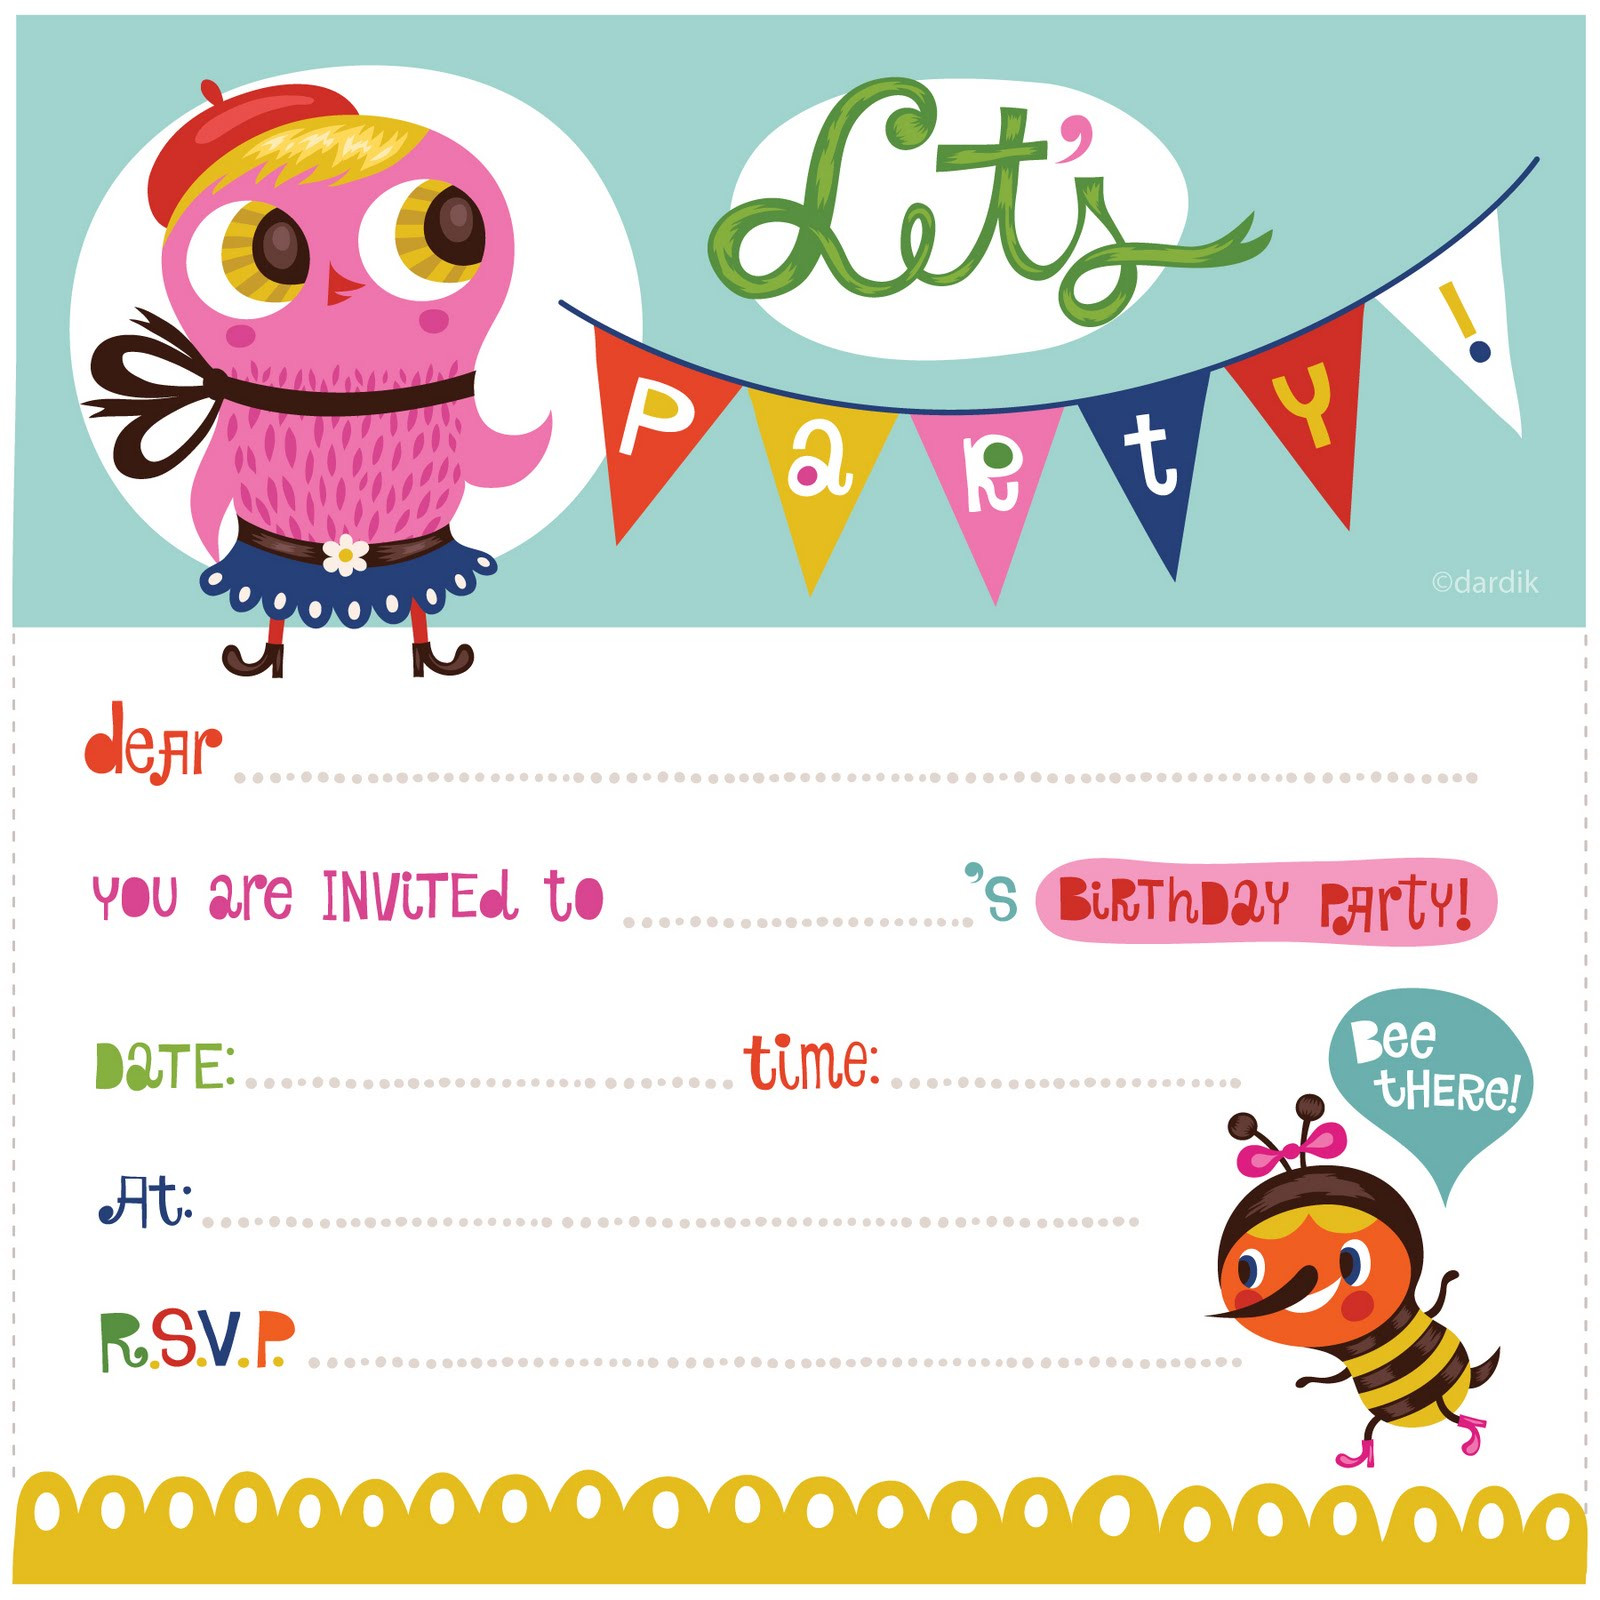 Best ideas about Birthday Party Invitations Free . Save or Pin Free Printable Birthday Party Invitations Now.